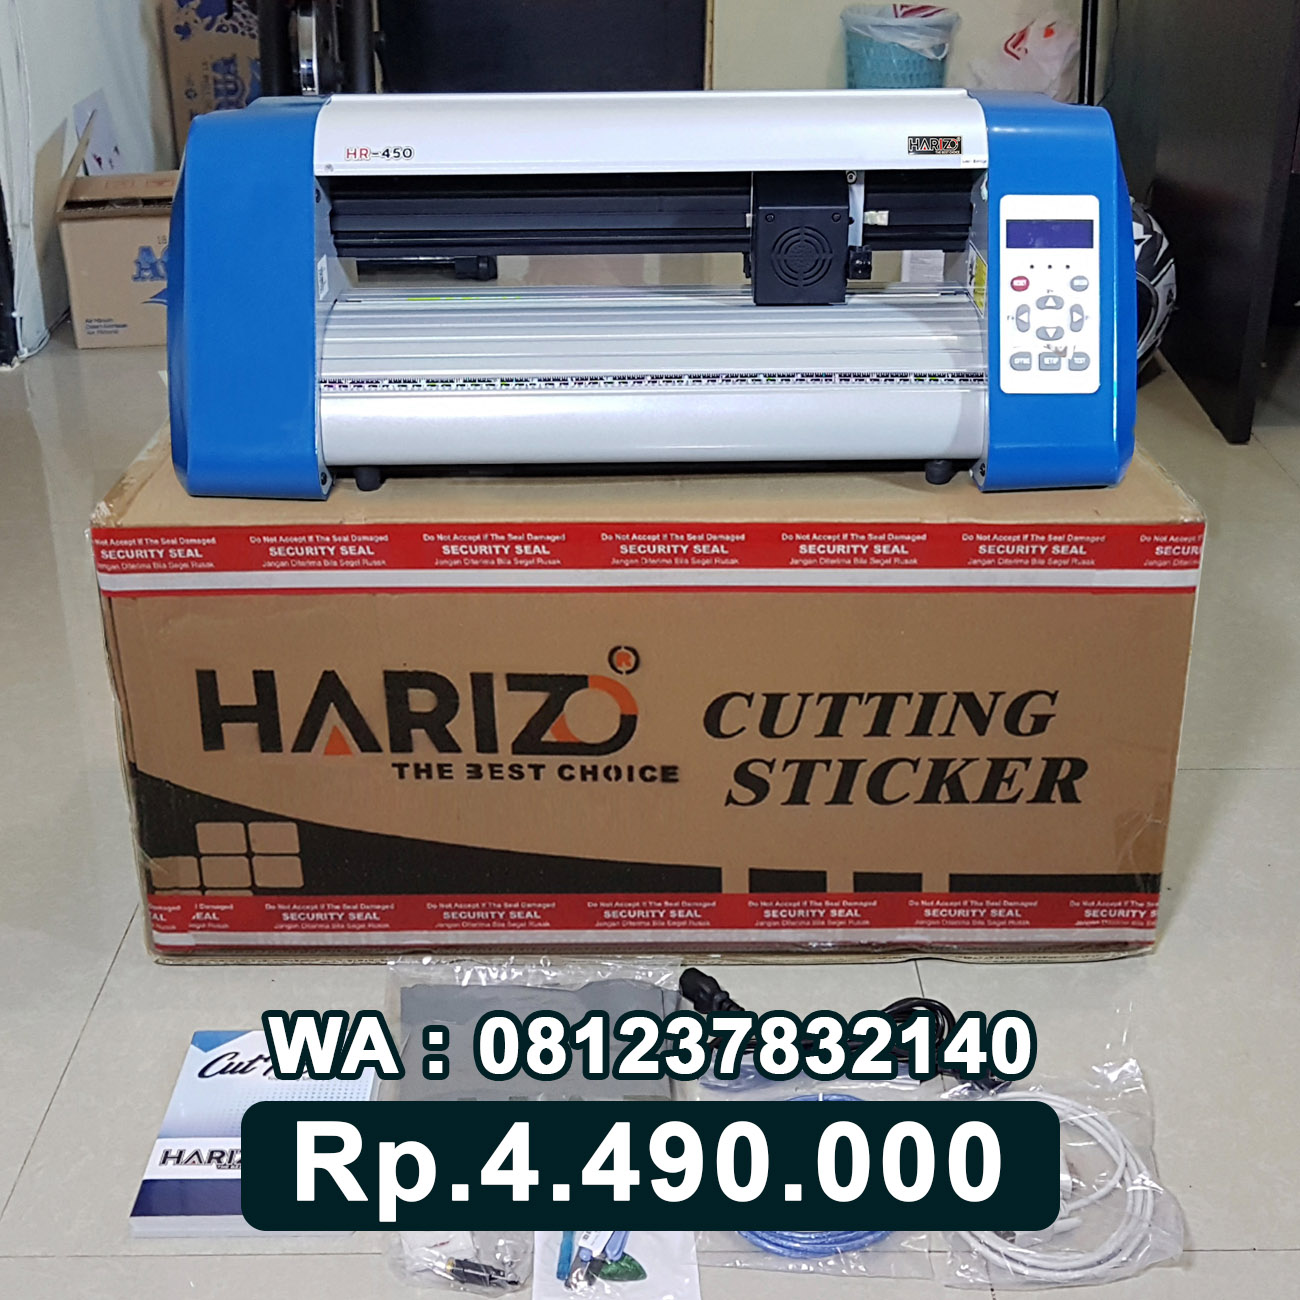 JUAL MESIN CUTTING STICKER HARIZO 450 Tanjung Selor